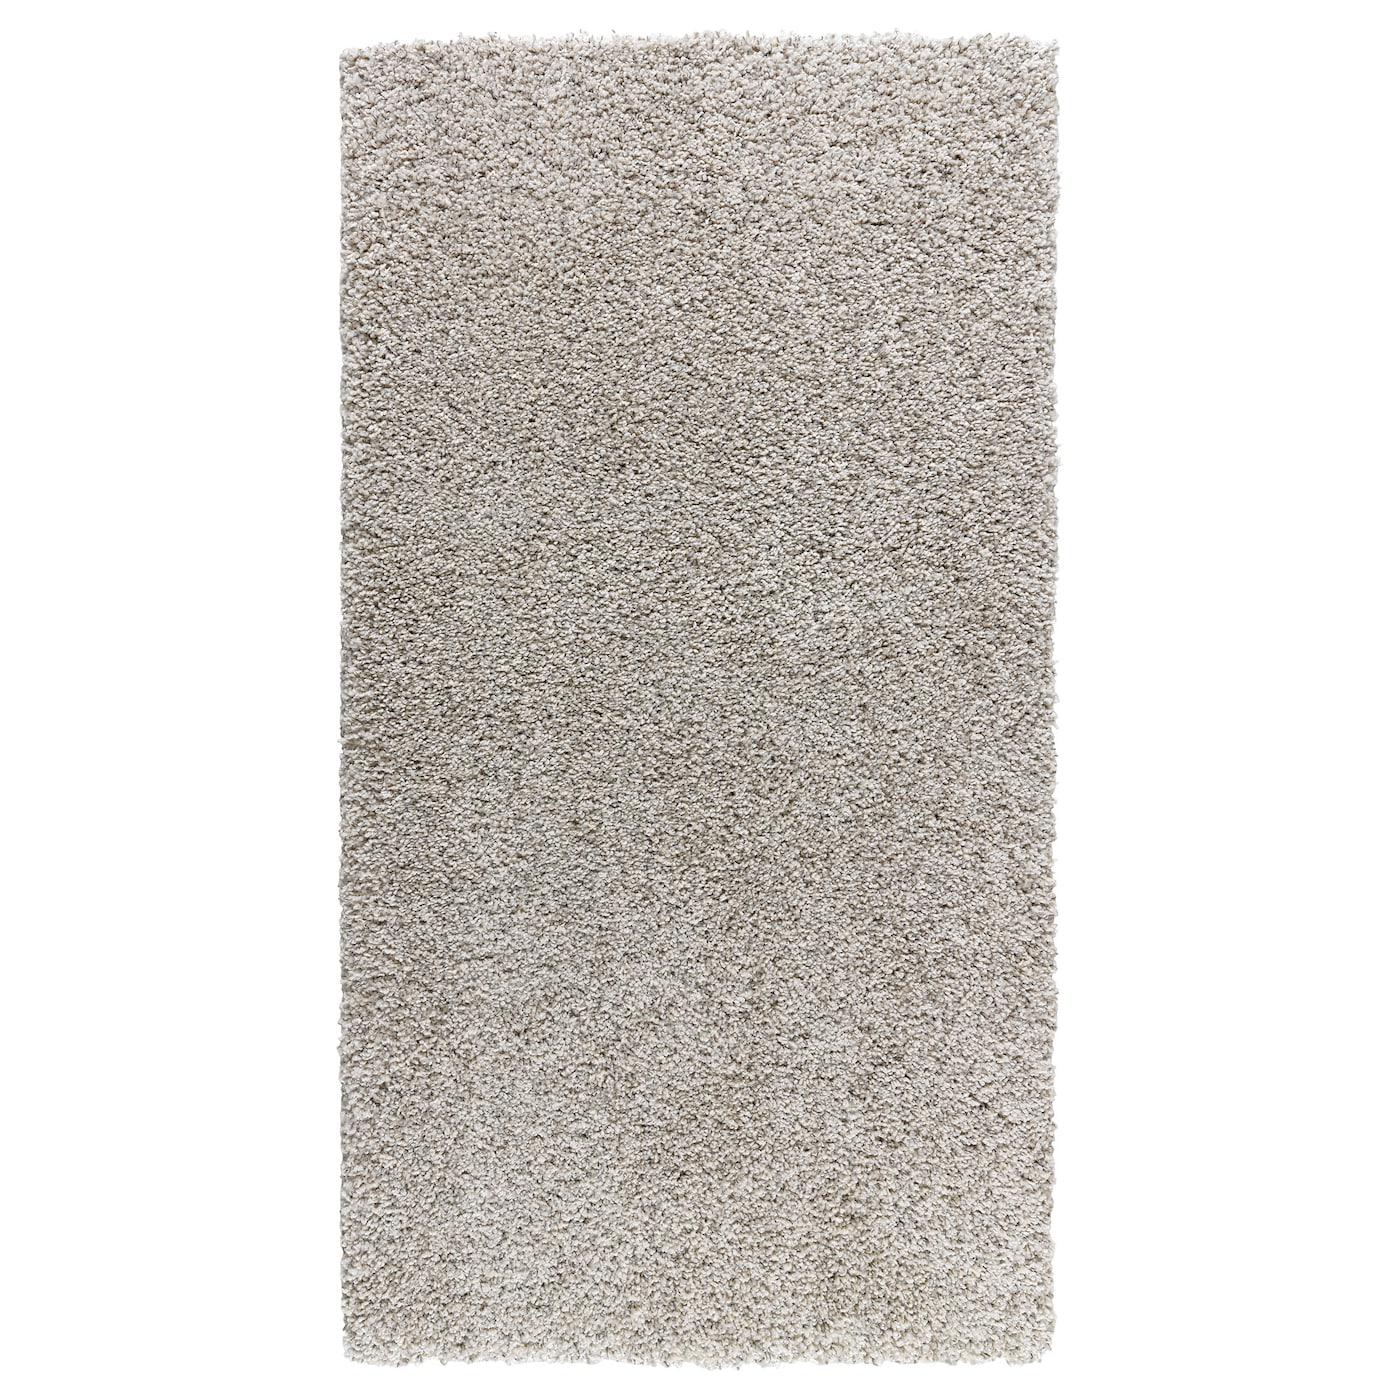 alhede tapis poils hauts blanc cass 80x150 cm ikea. Black Bedroom Furniture Sets. Home Design Ideas